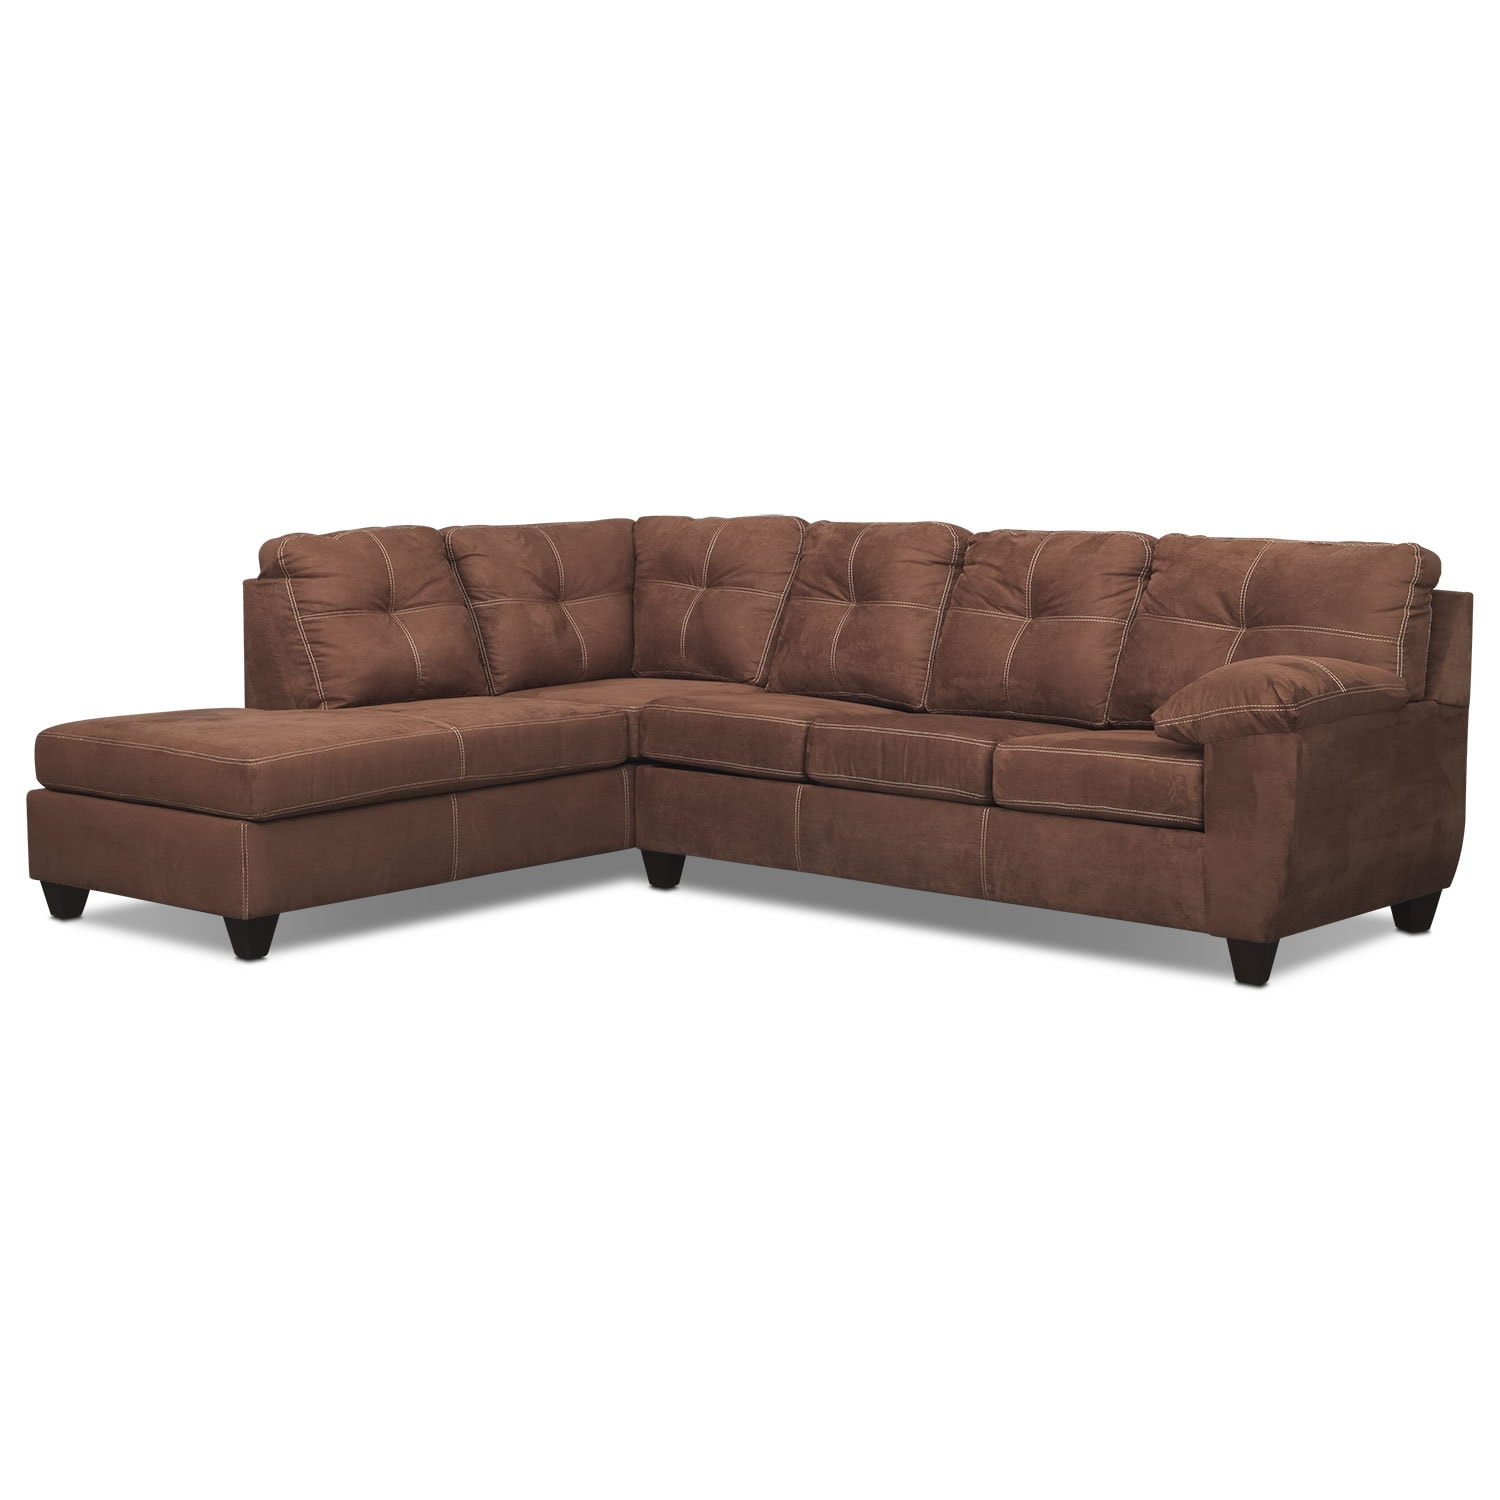 Ricardo 2 piece memory foam sleeper sectional with left for Sleeper sectional